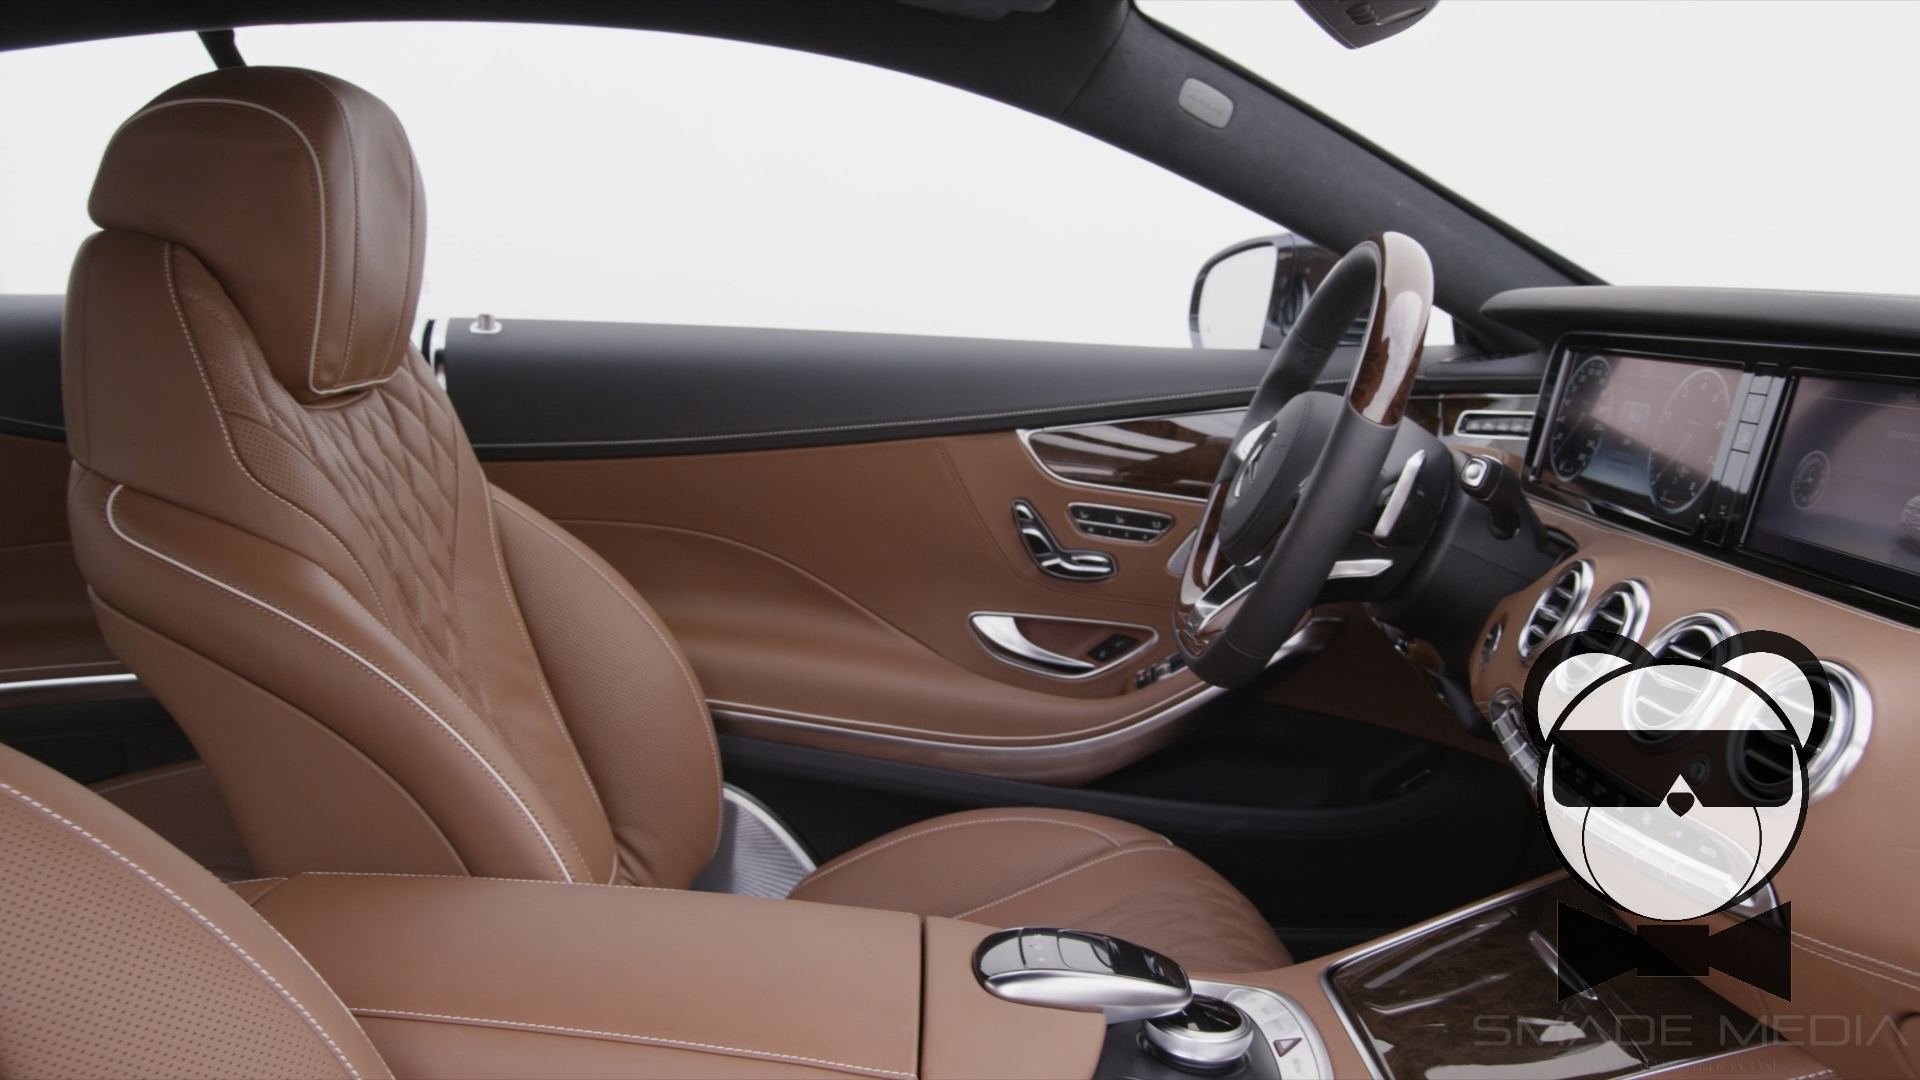 Mercedes-Benz S-Class Coupe - (213) SMADEMEDIA.COM inDESIGN Collection